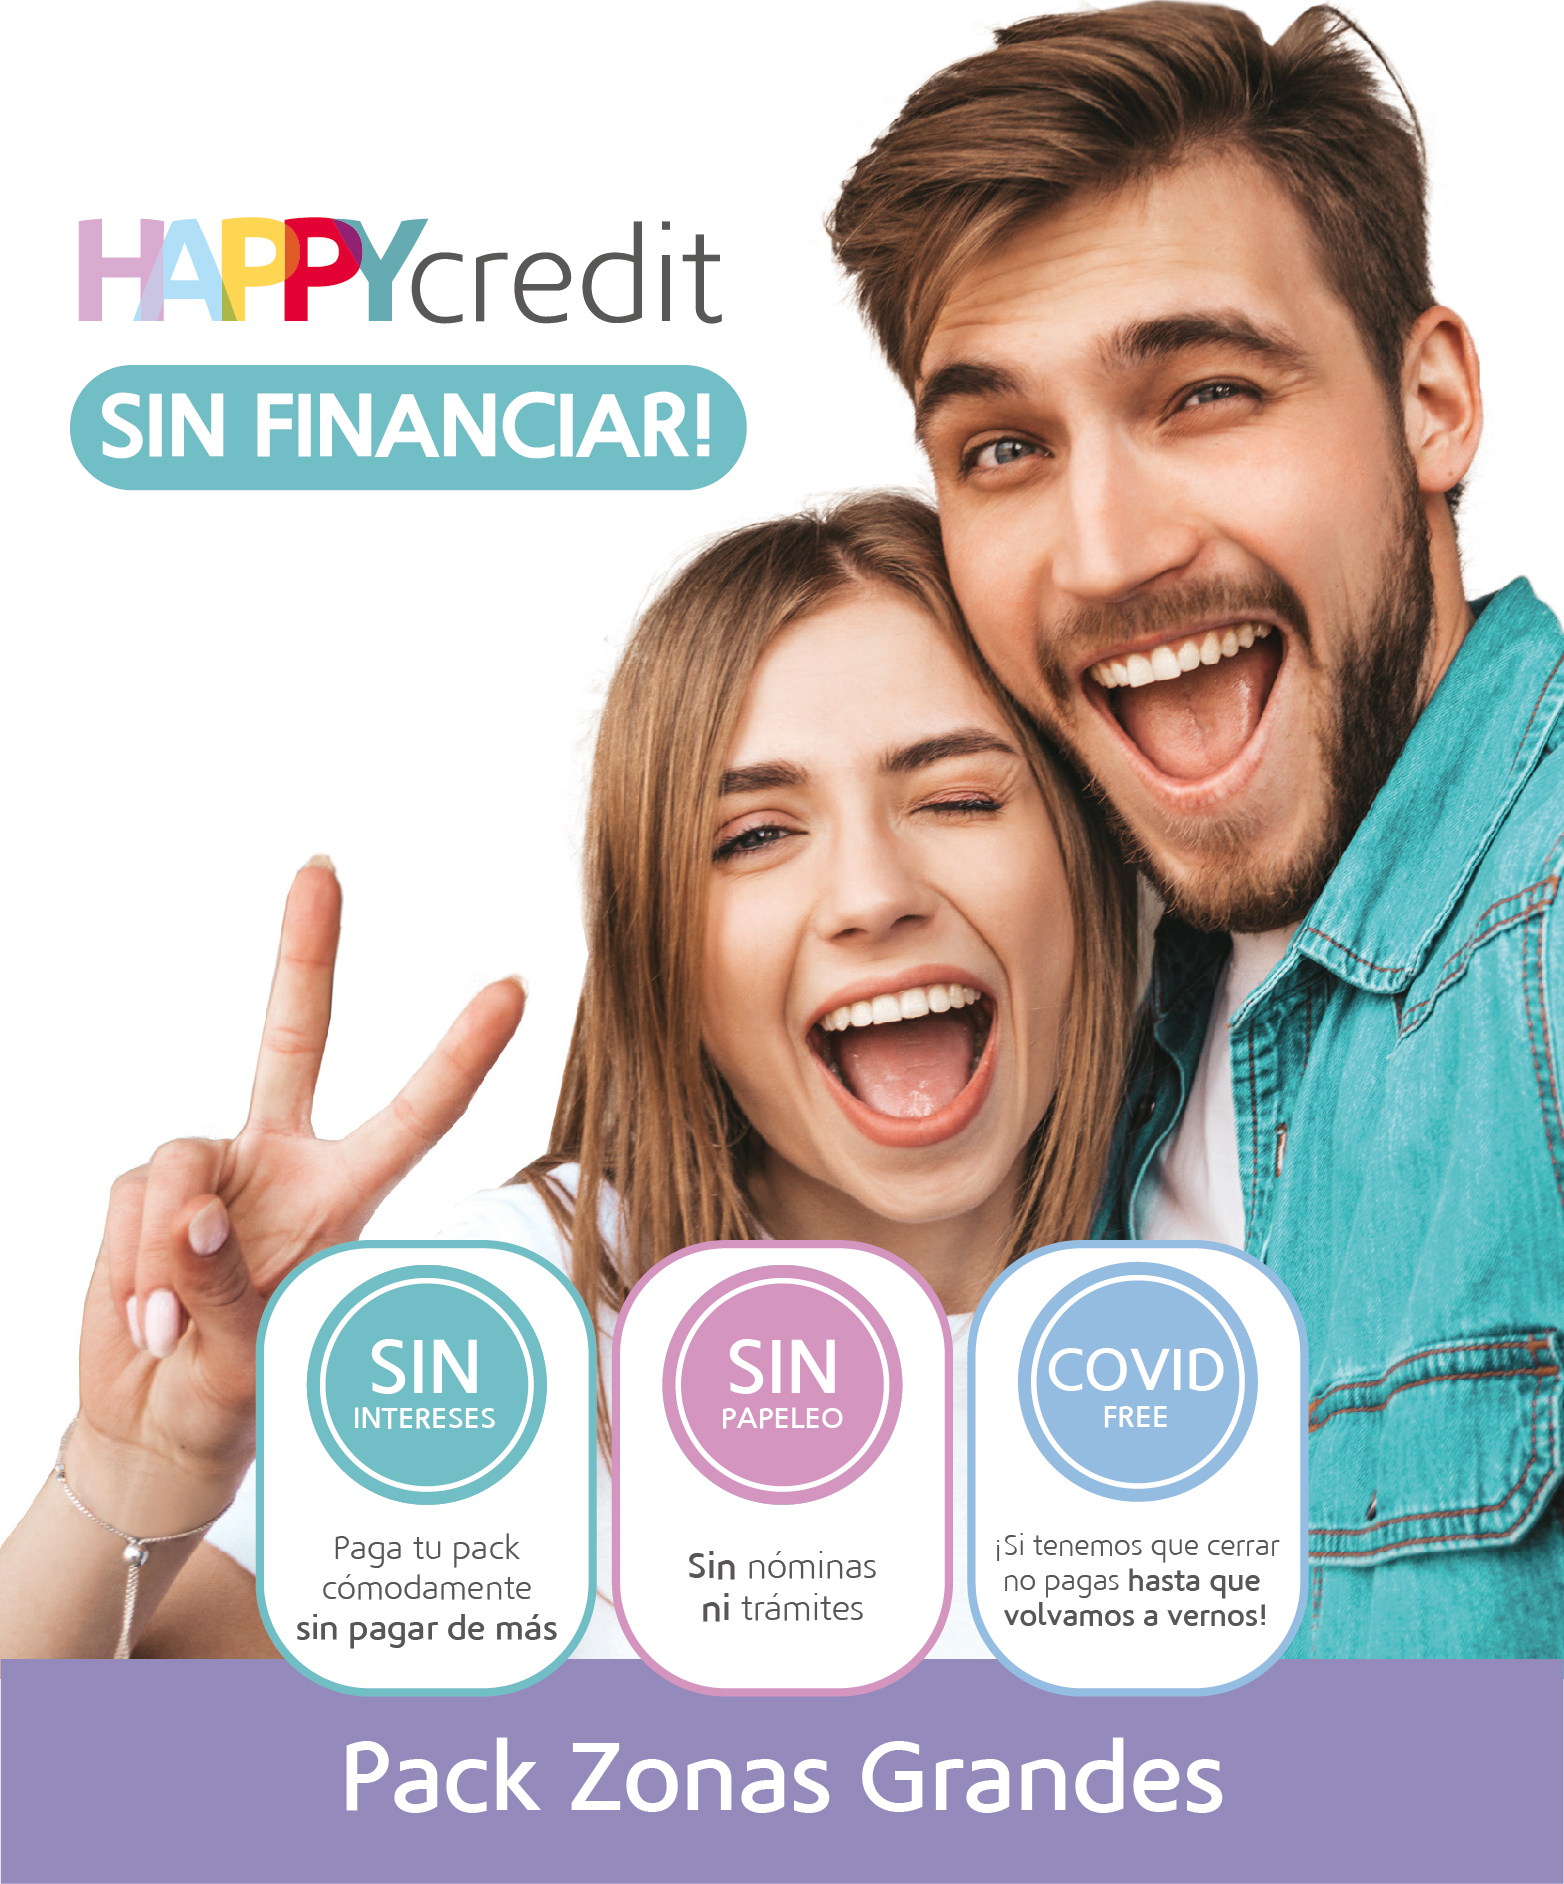 happycredit quito grande